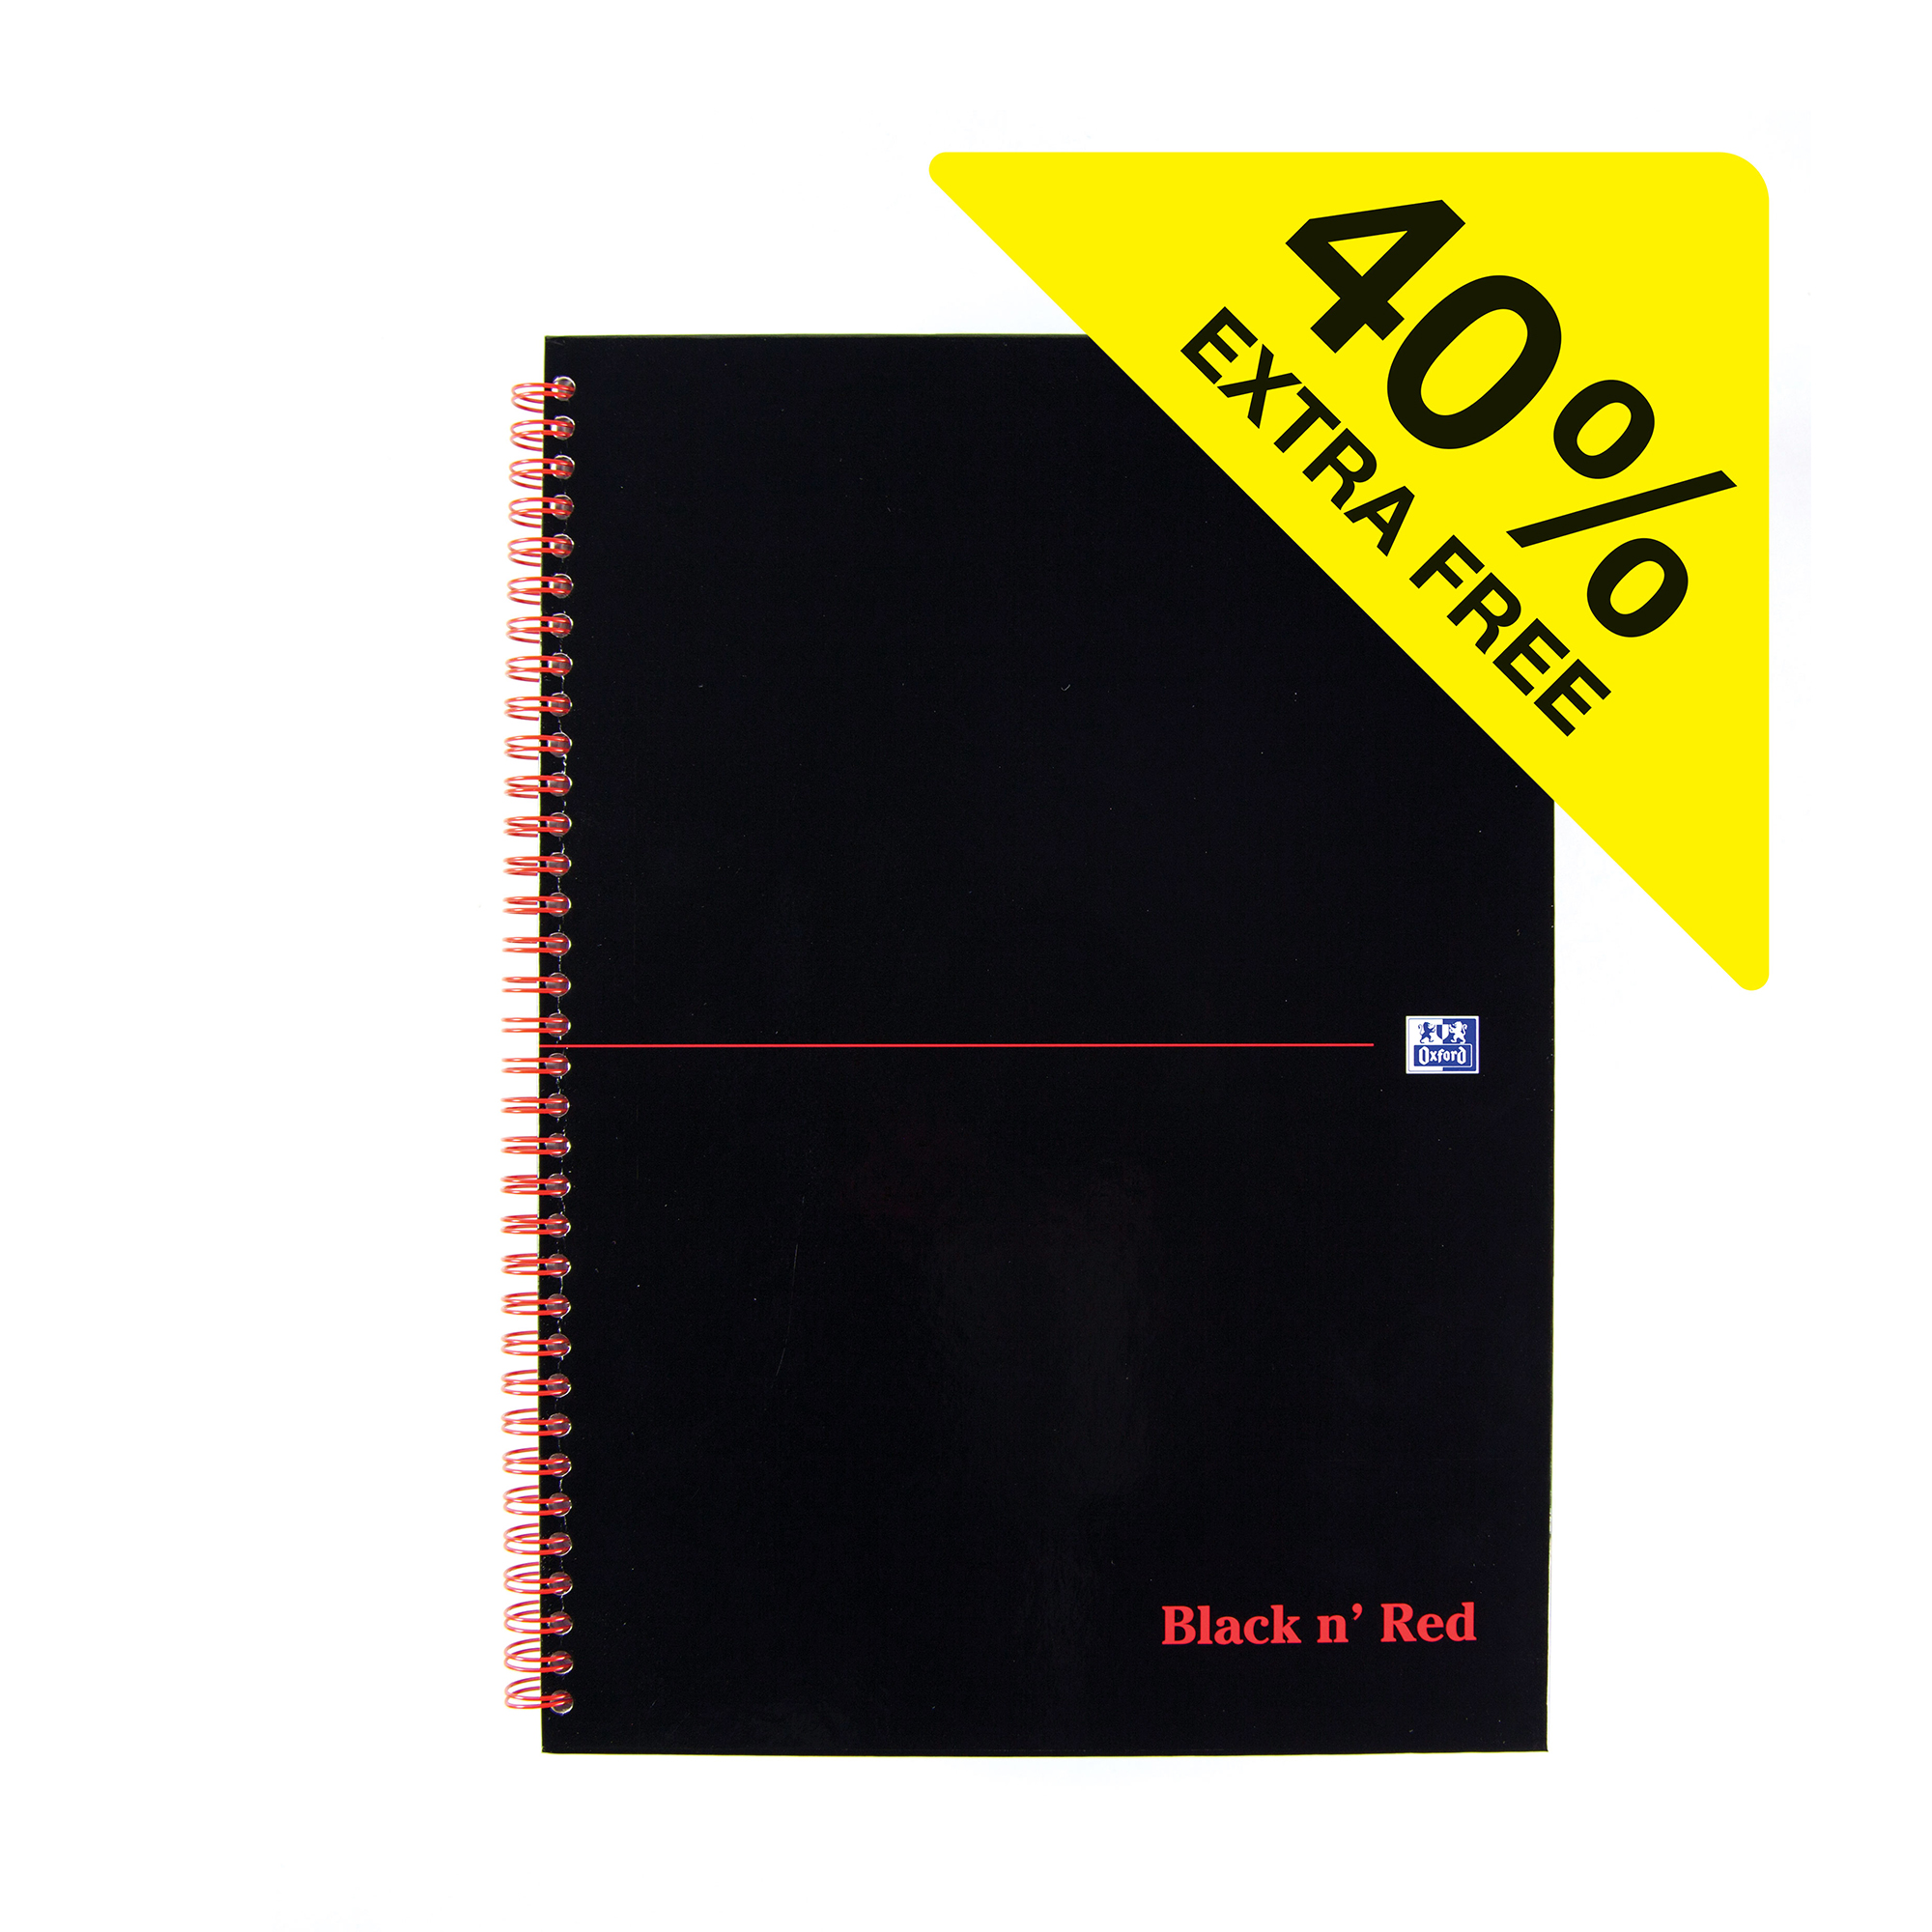 Black n Red Notebook Wirebound 90gsm Ruled 140pp A4 Glossy Black Ref 400115985 [Pack 5 Plus 2 FREE]